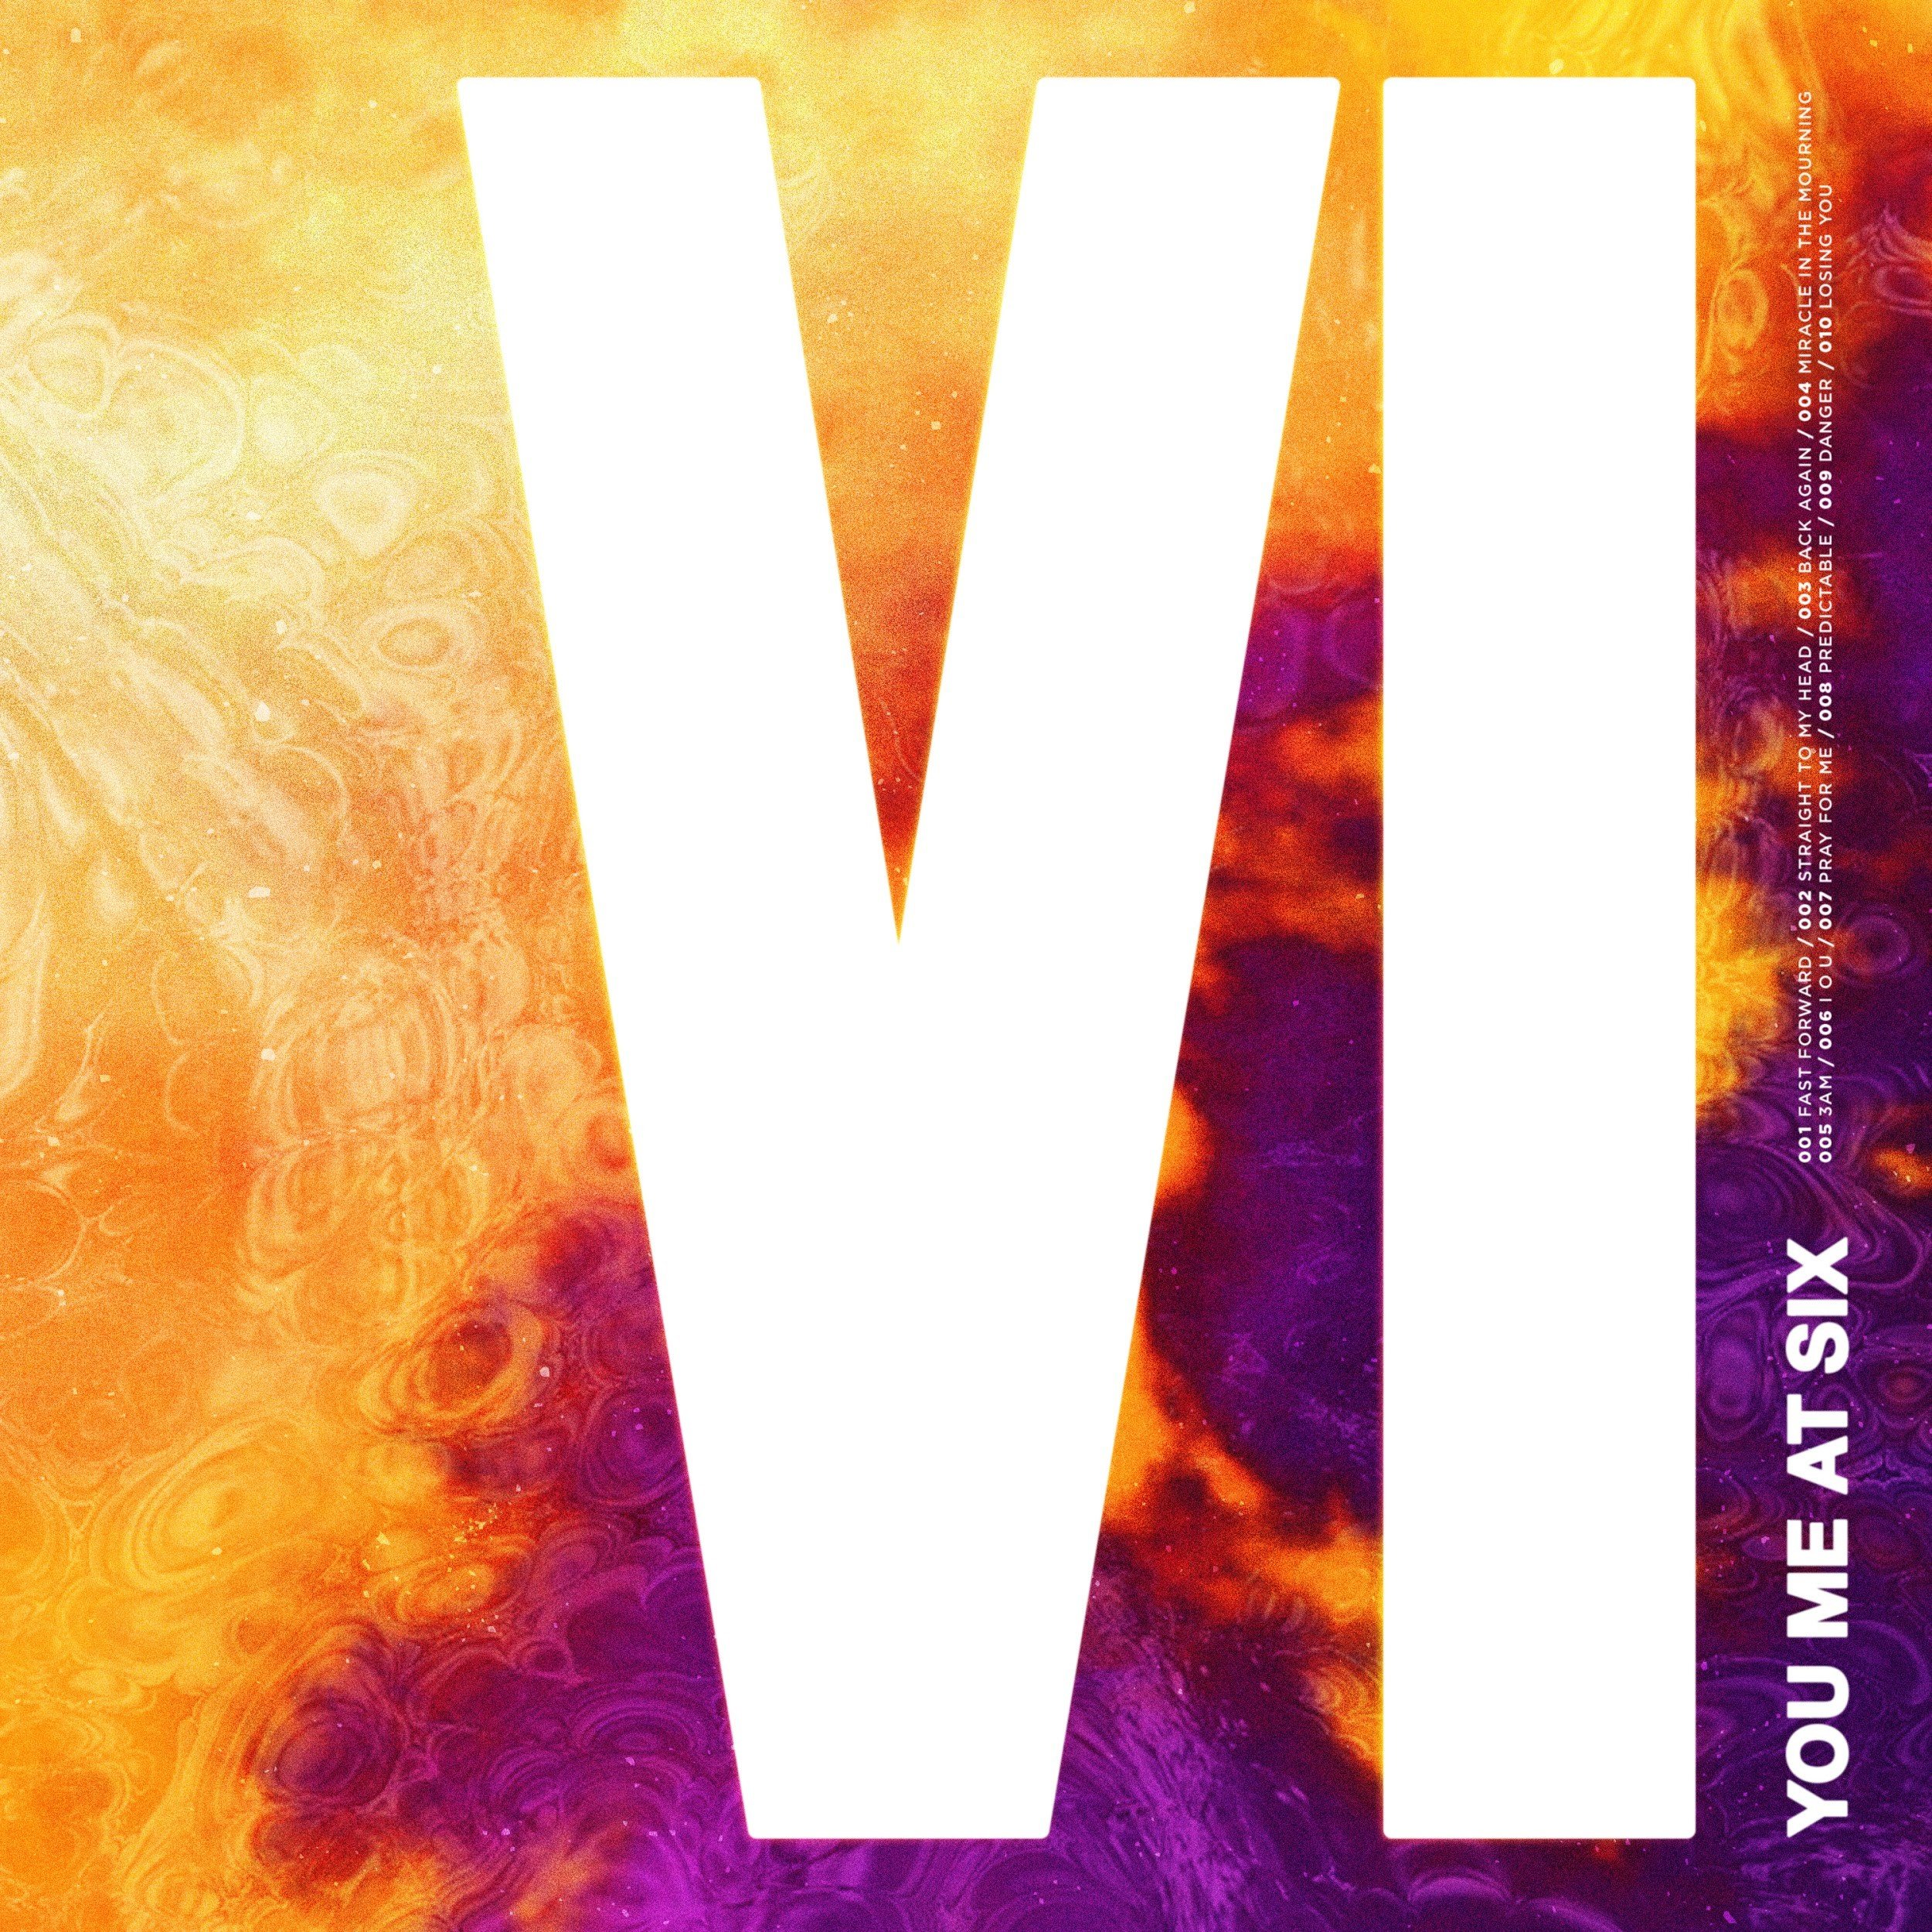 Image result wey dey for You Me At Six - VI album